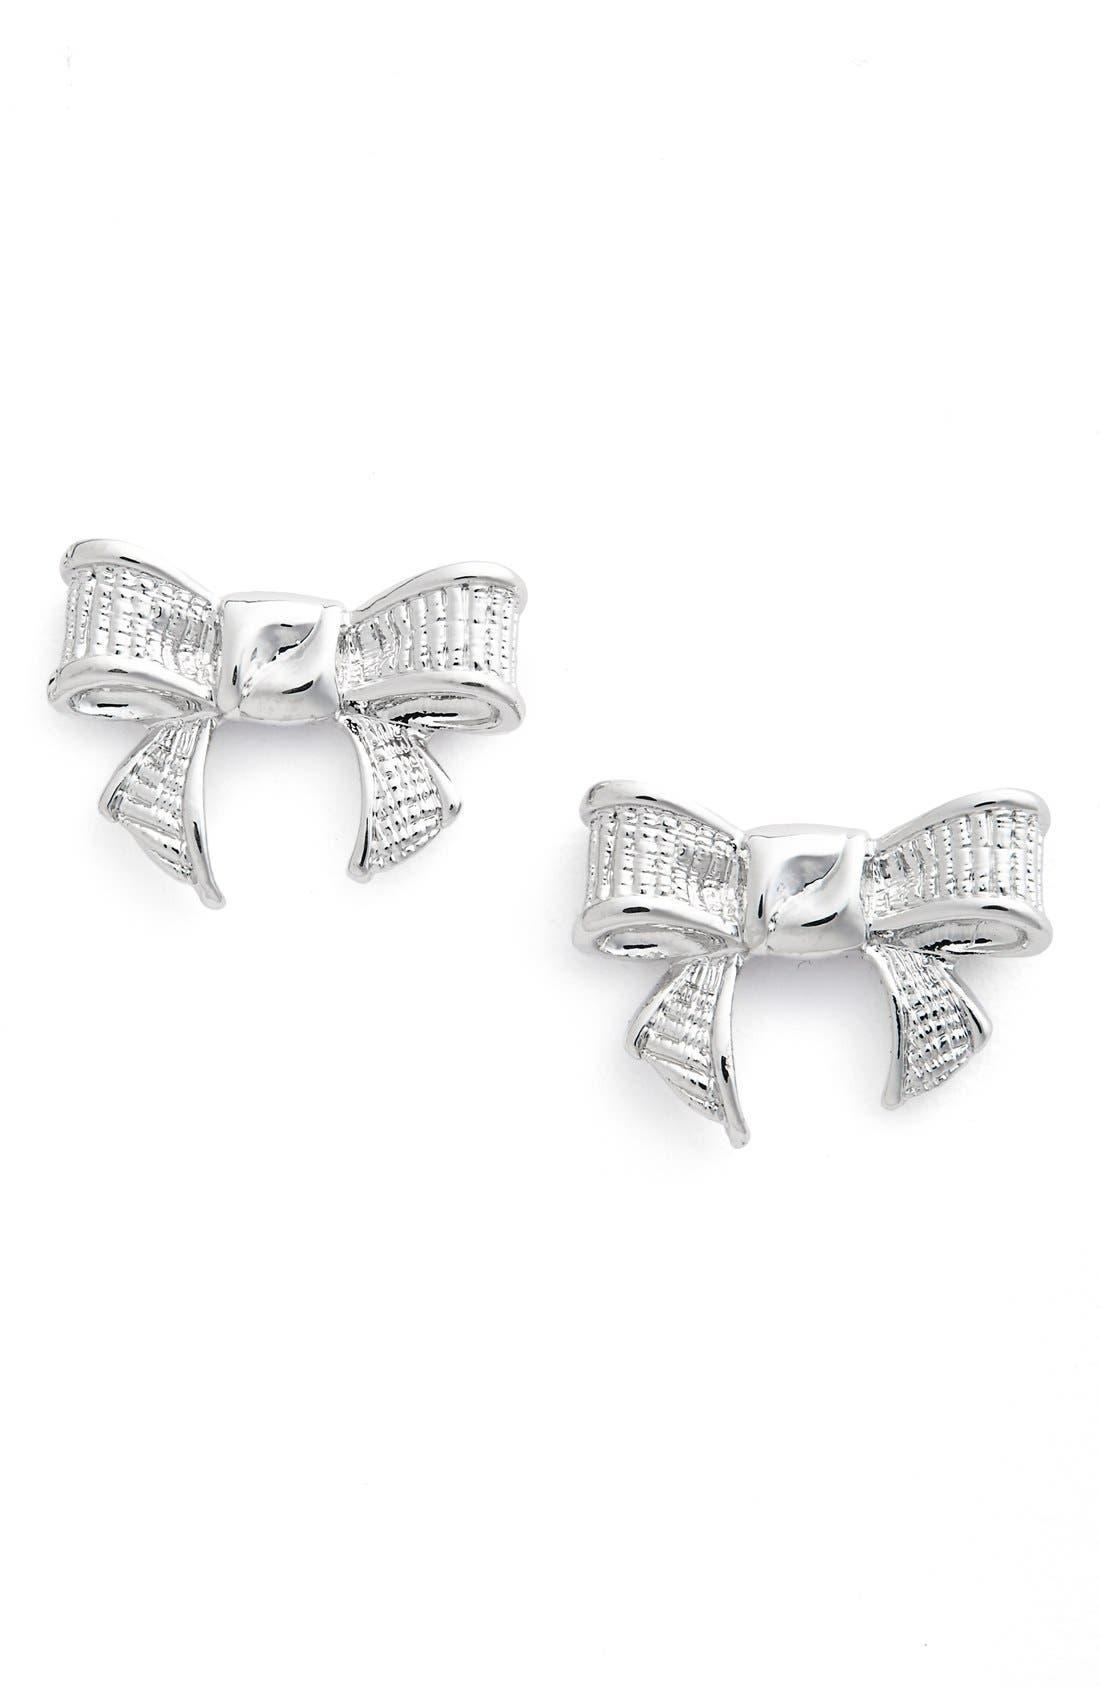 Alternate Image 1 Selected - Ted Baker London 'Glori' Bow Stud Earrings